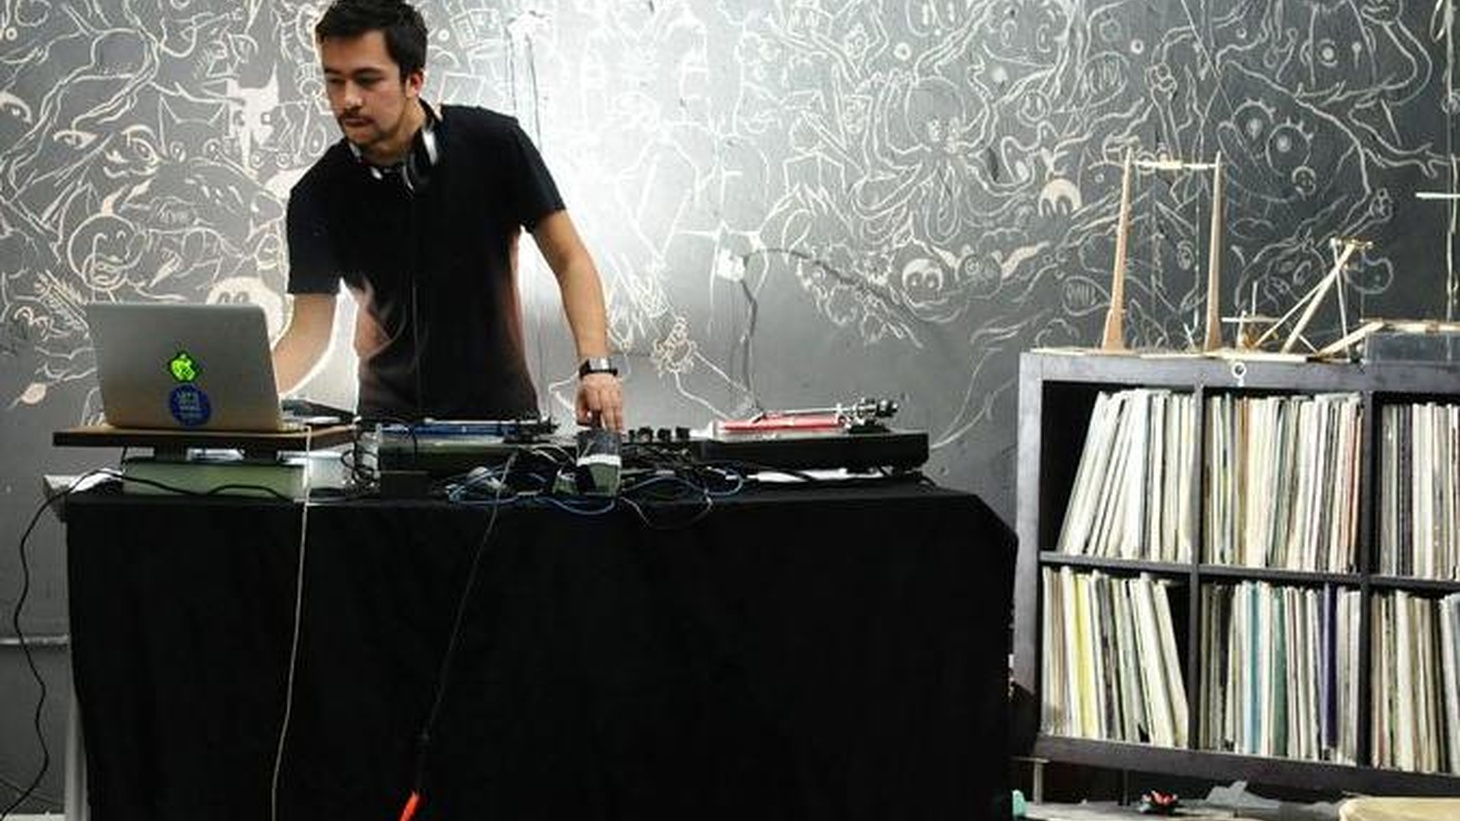 Popular Chilean mixmaster DJ Raff makes his US debut with Latino & Proud, an inspired bi-lingual fusion of bass-heavy electronica...